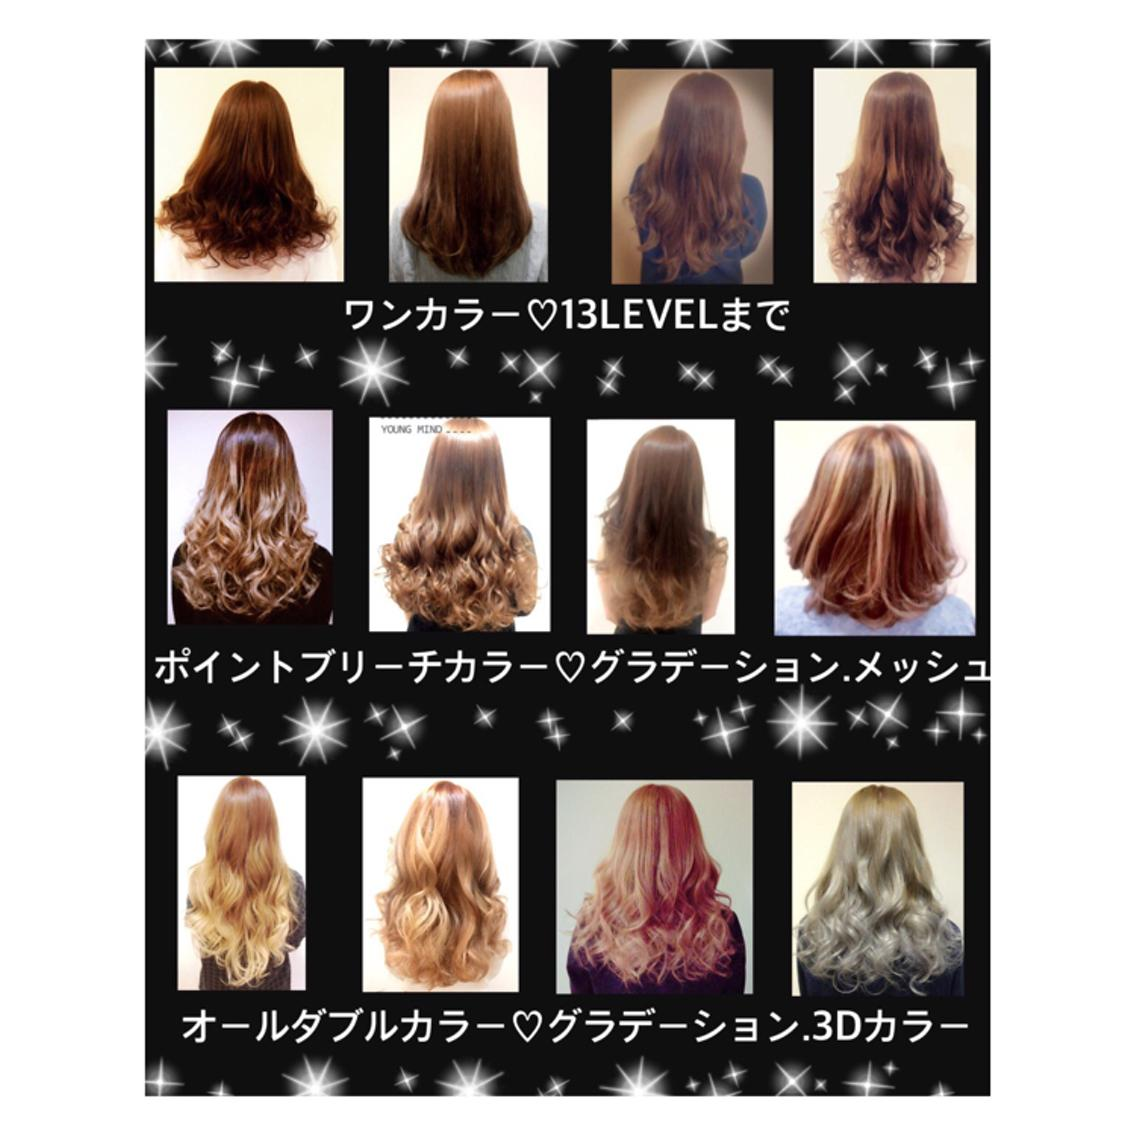 hair color ❤︎